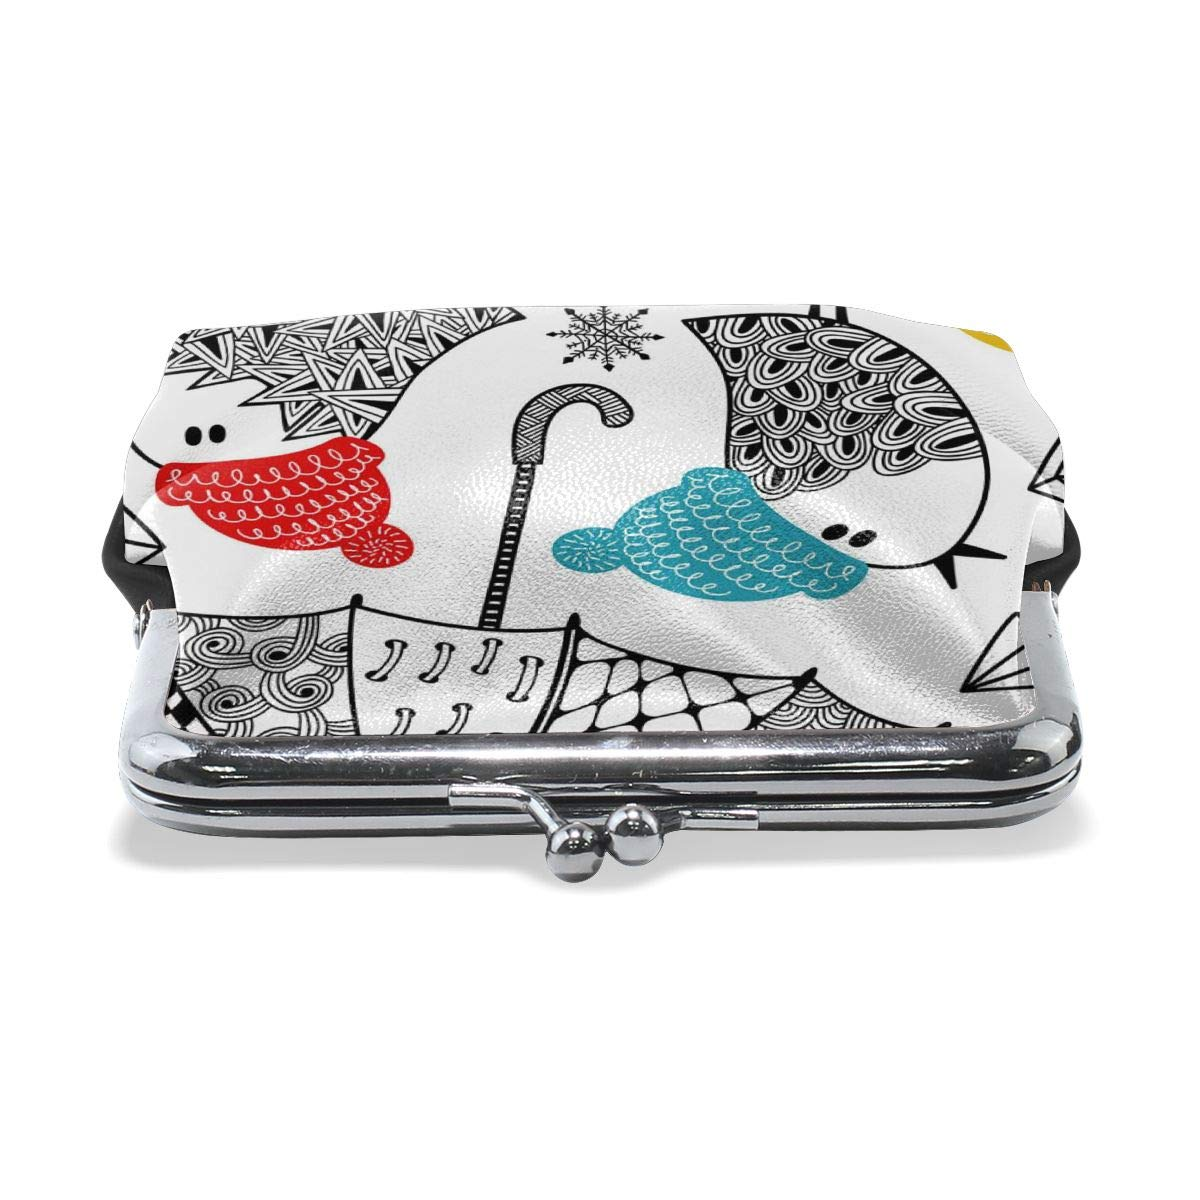 Architd Customized Cute Retro Coin Purse Girl Kiss And Buckle Change Purse Ladys HandbagBirds With Umbrellas And Umbrellas In Winter Personality Metal Lock Purse